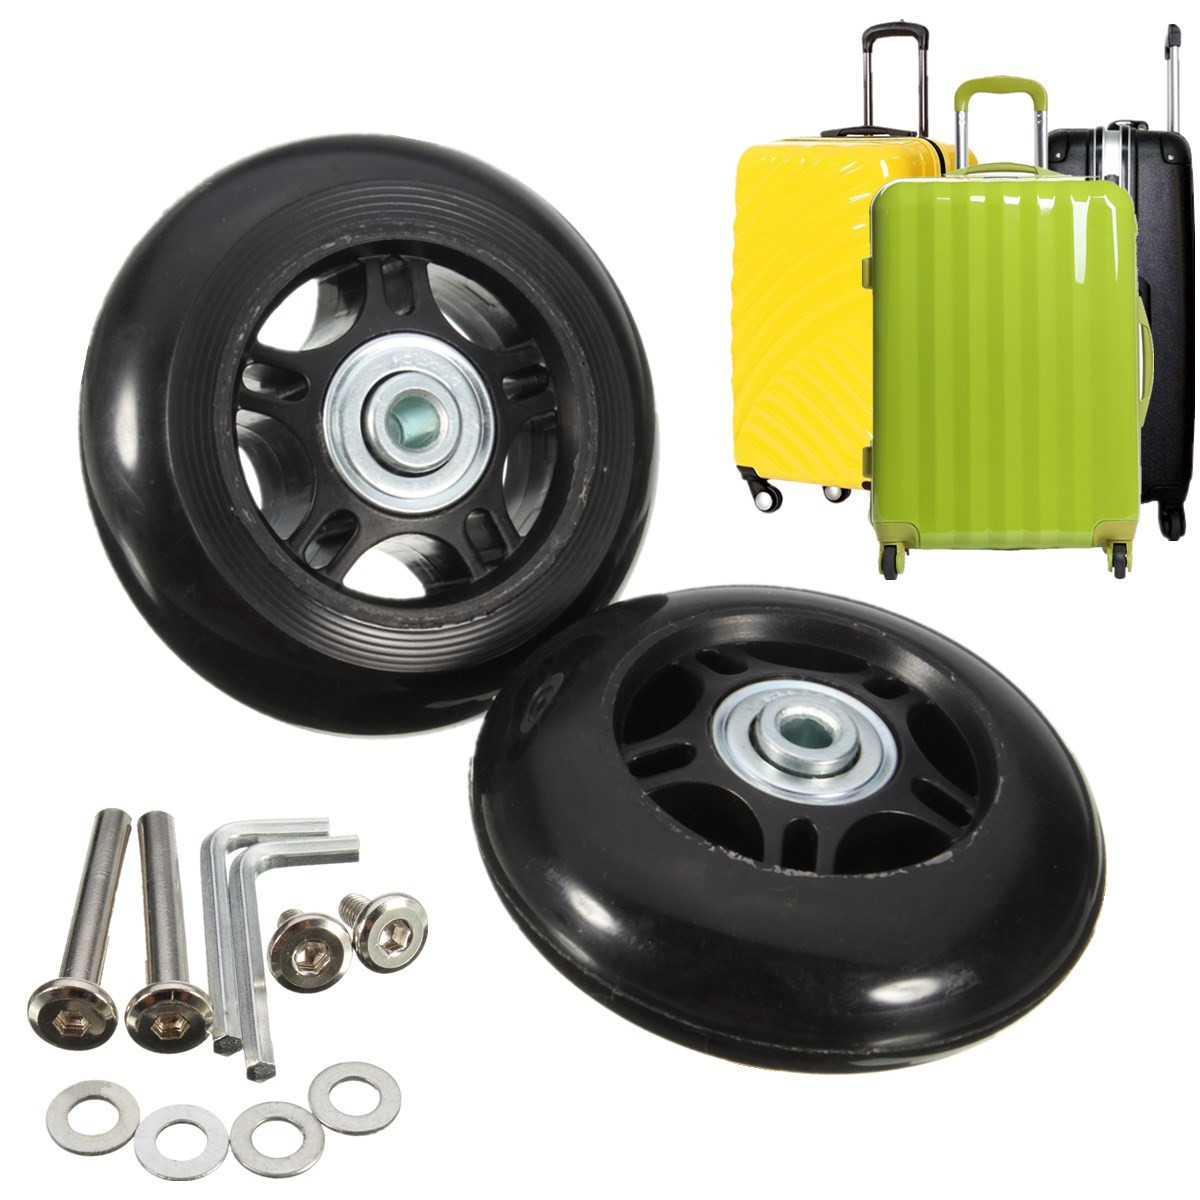 2 Set Black Luggage Suitcase Replacement Wheels Axles Rubber Wheels Repair Kit OD 75mm